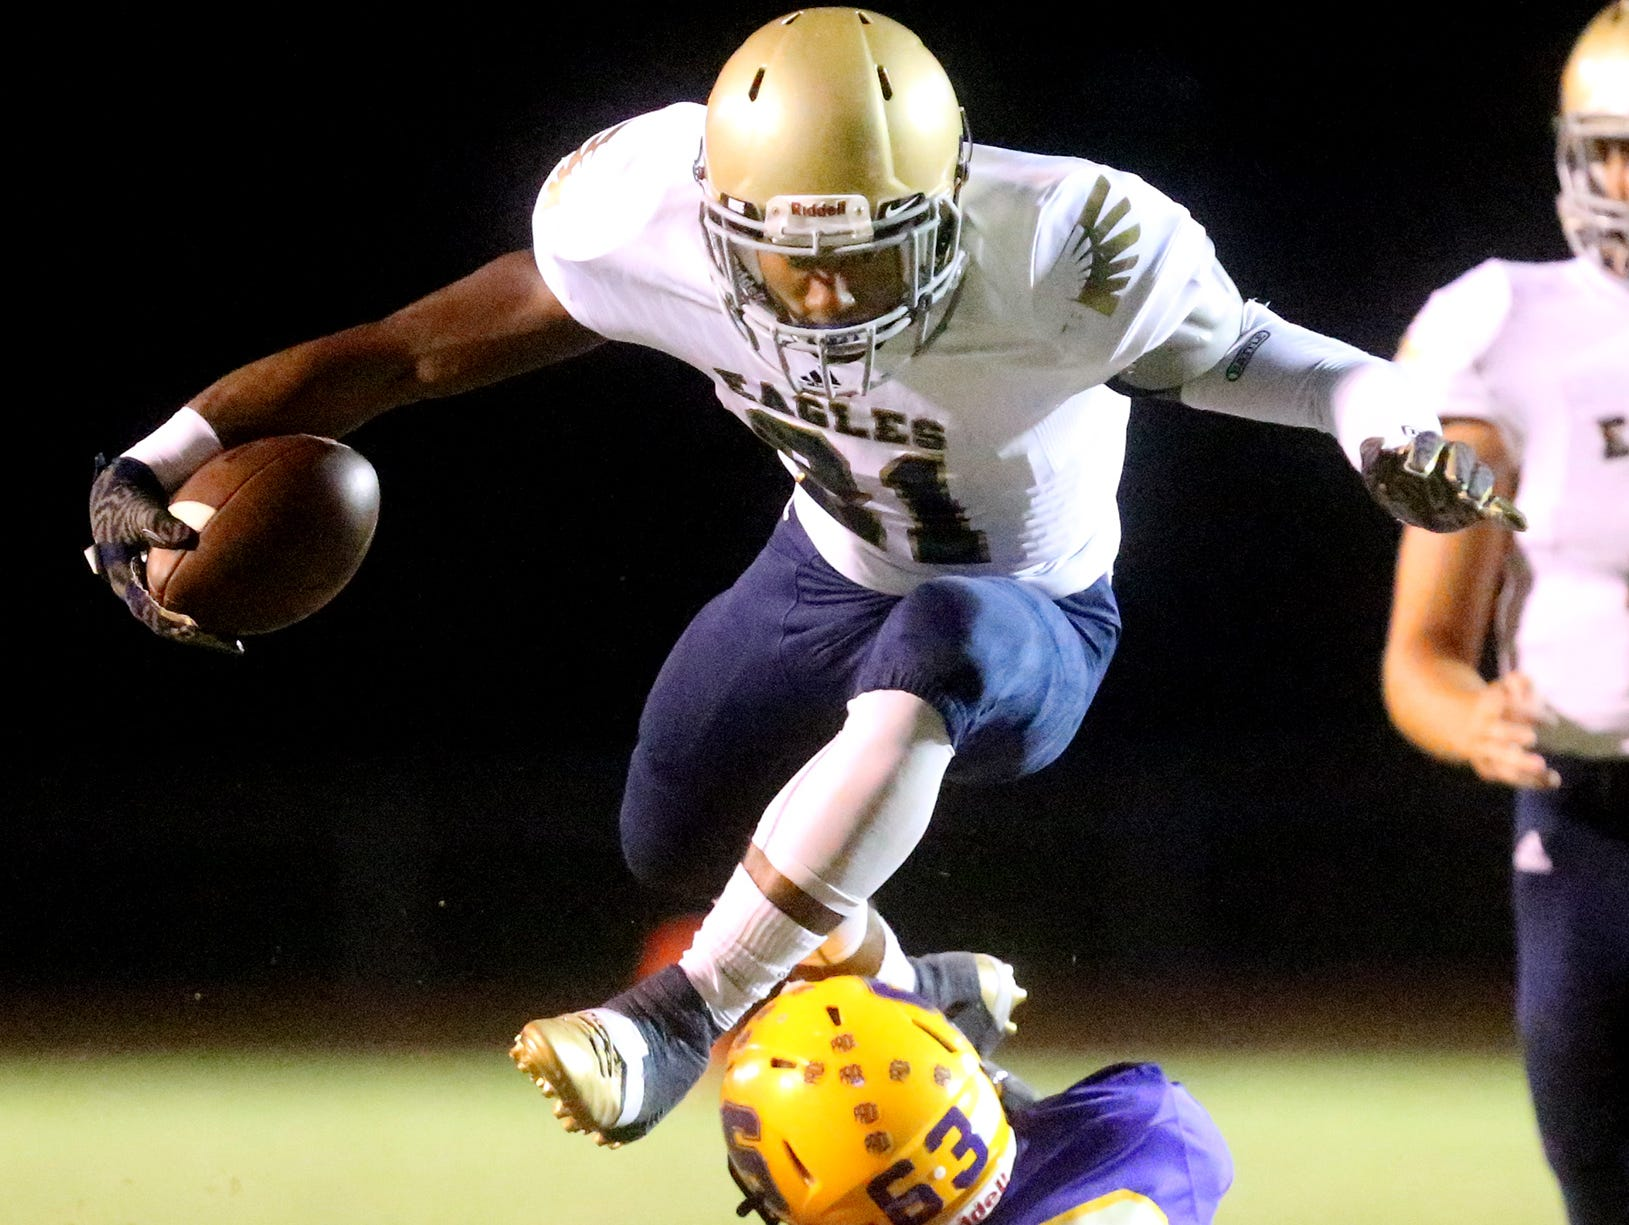 Independence's Troy Henderson (21) hurdles over players as he runs the ball during the game against Smyrna.